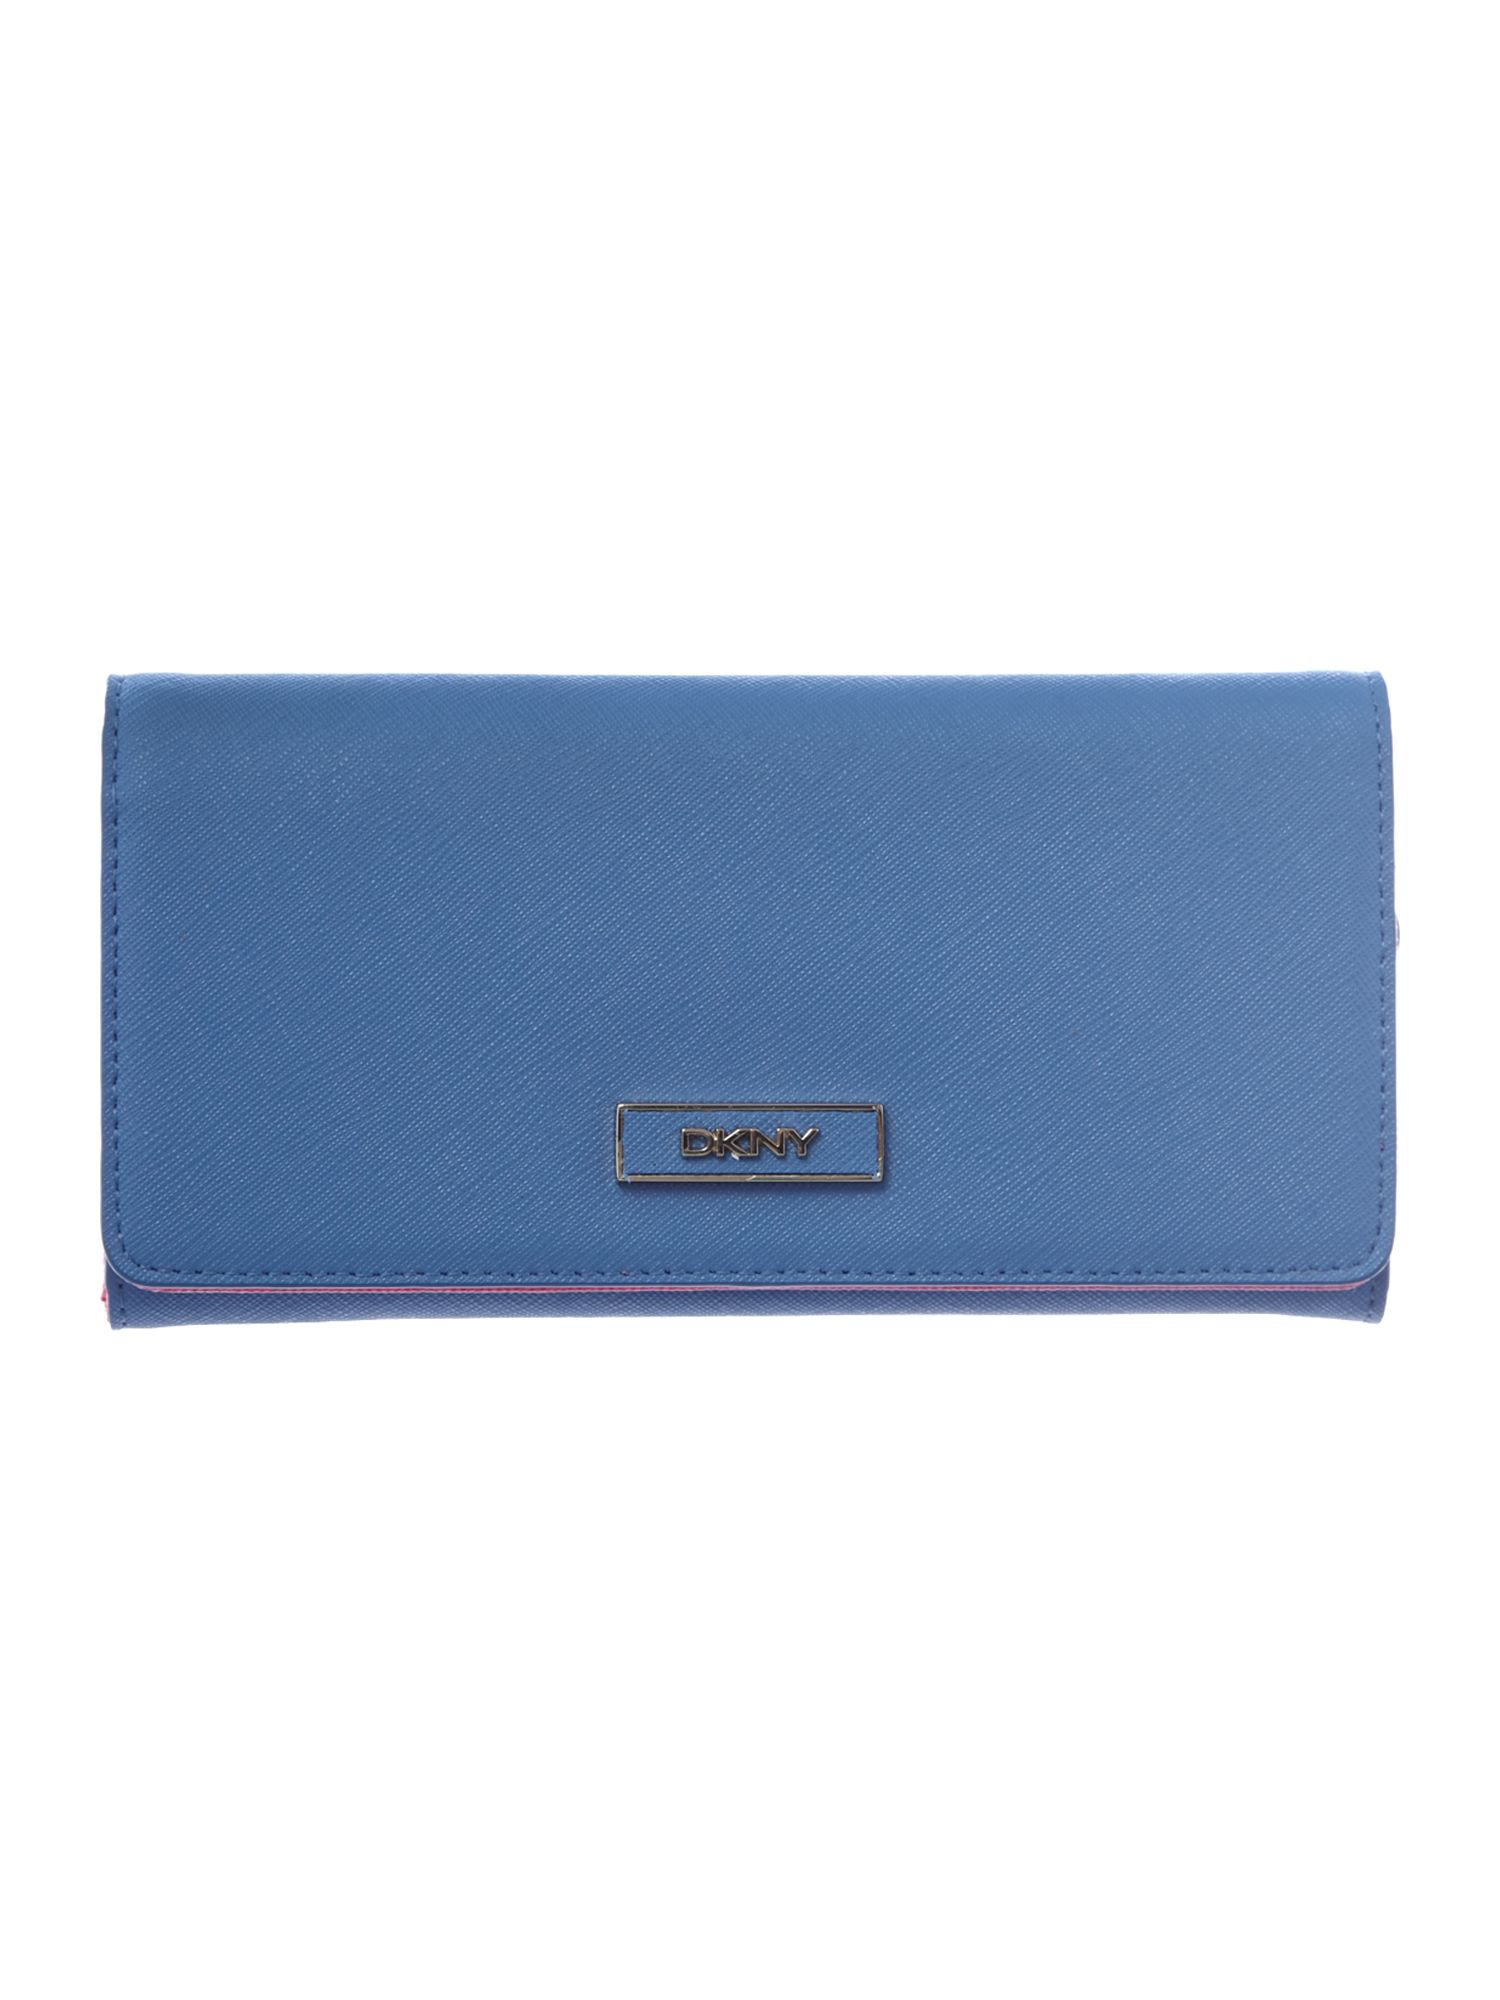 Saffiano blue large flap over purse